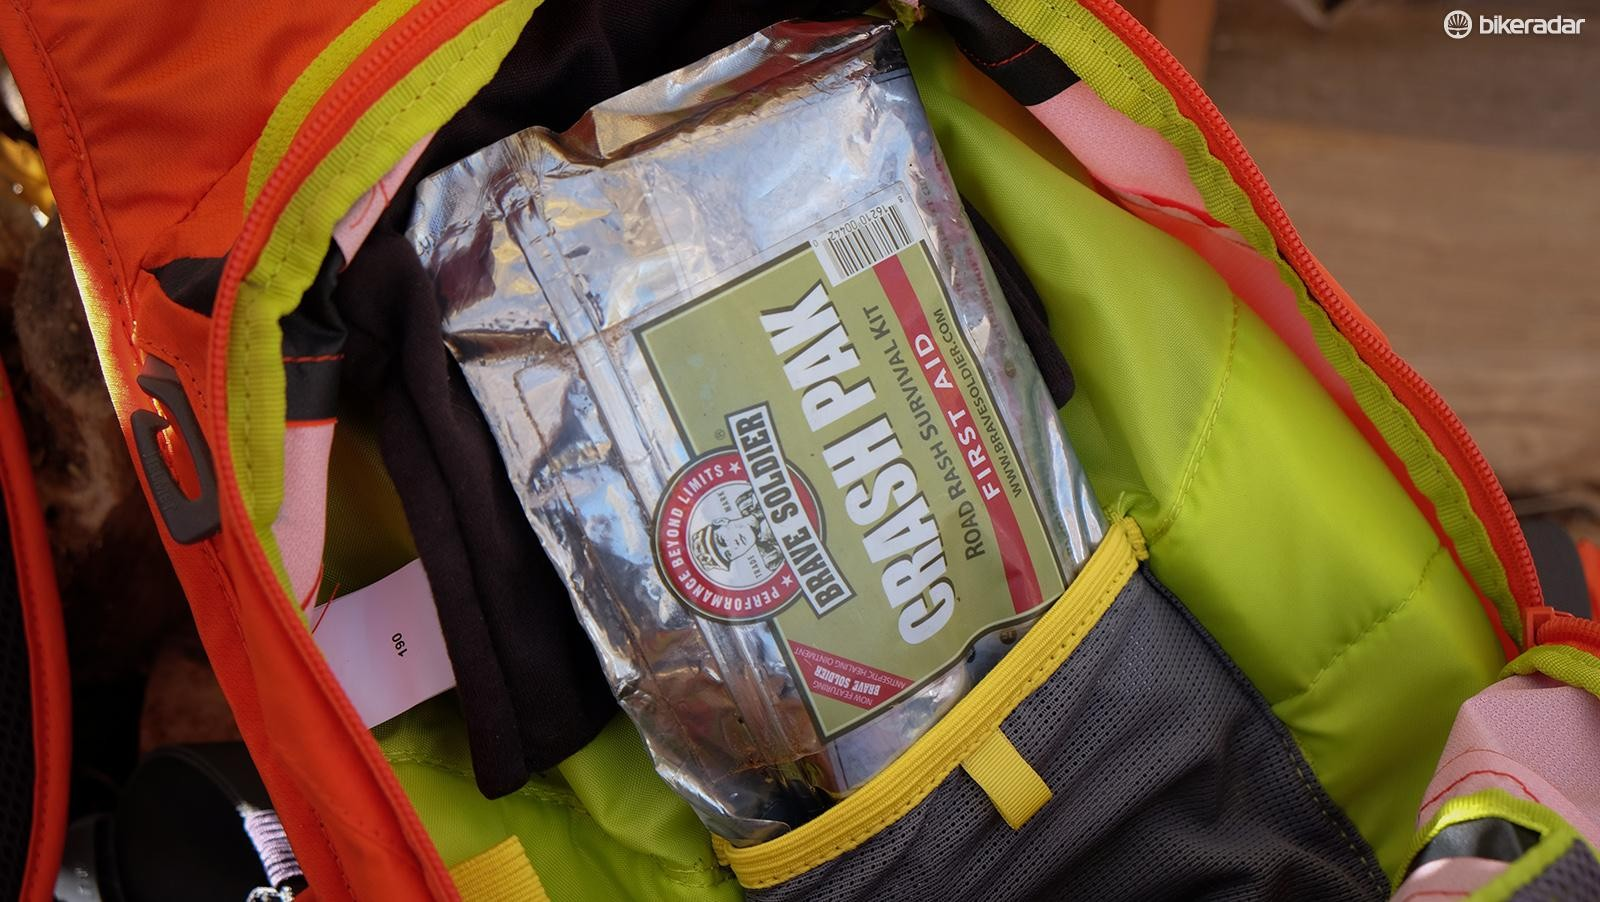 Accidents happen: carry a first aid kit in a waterproof pouch or container